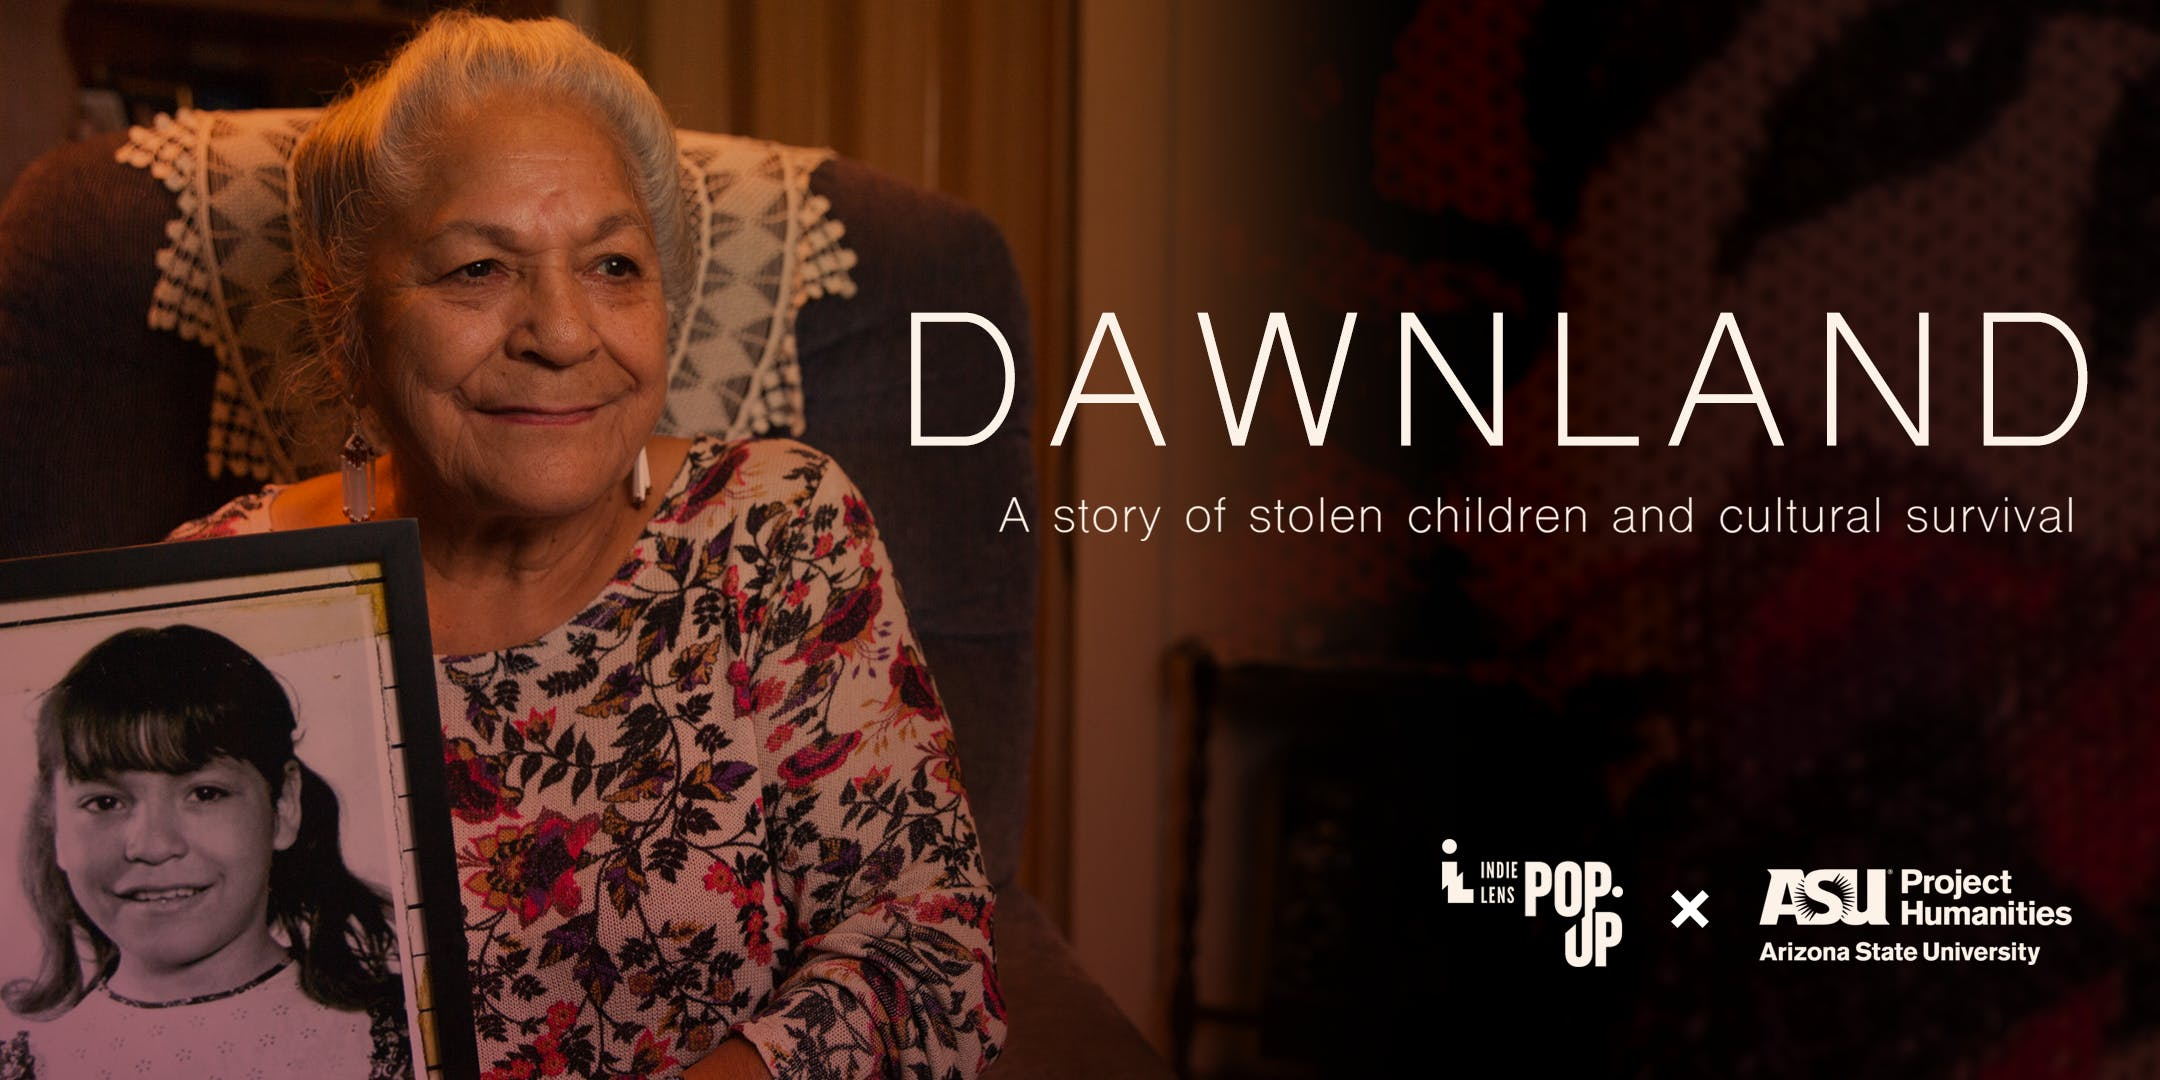 Dawnland (Film Screening and Discussion)